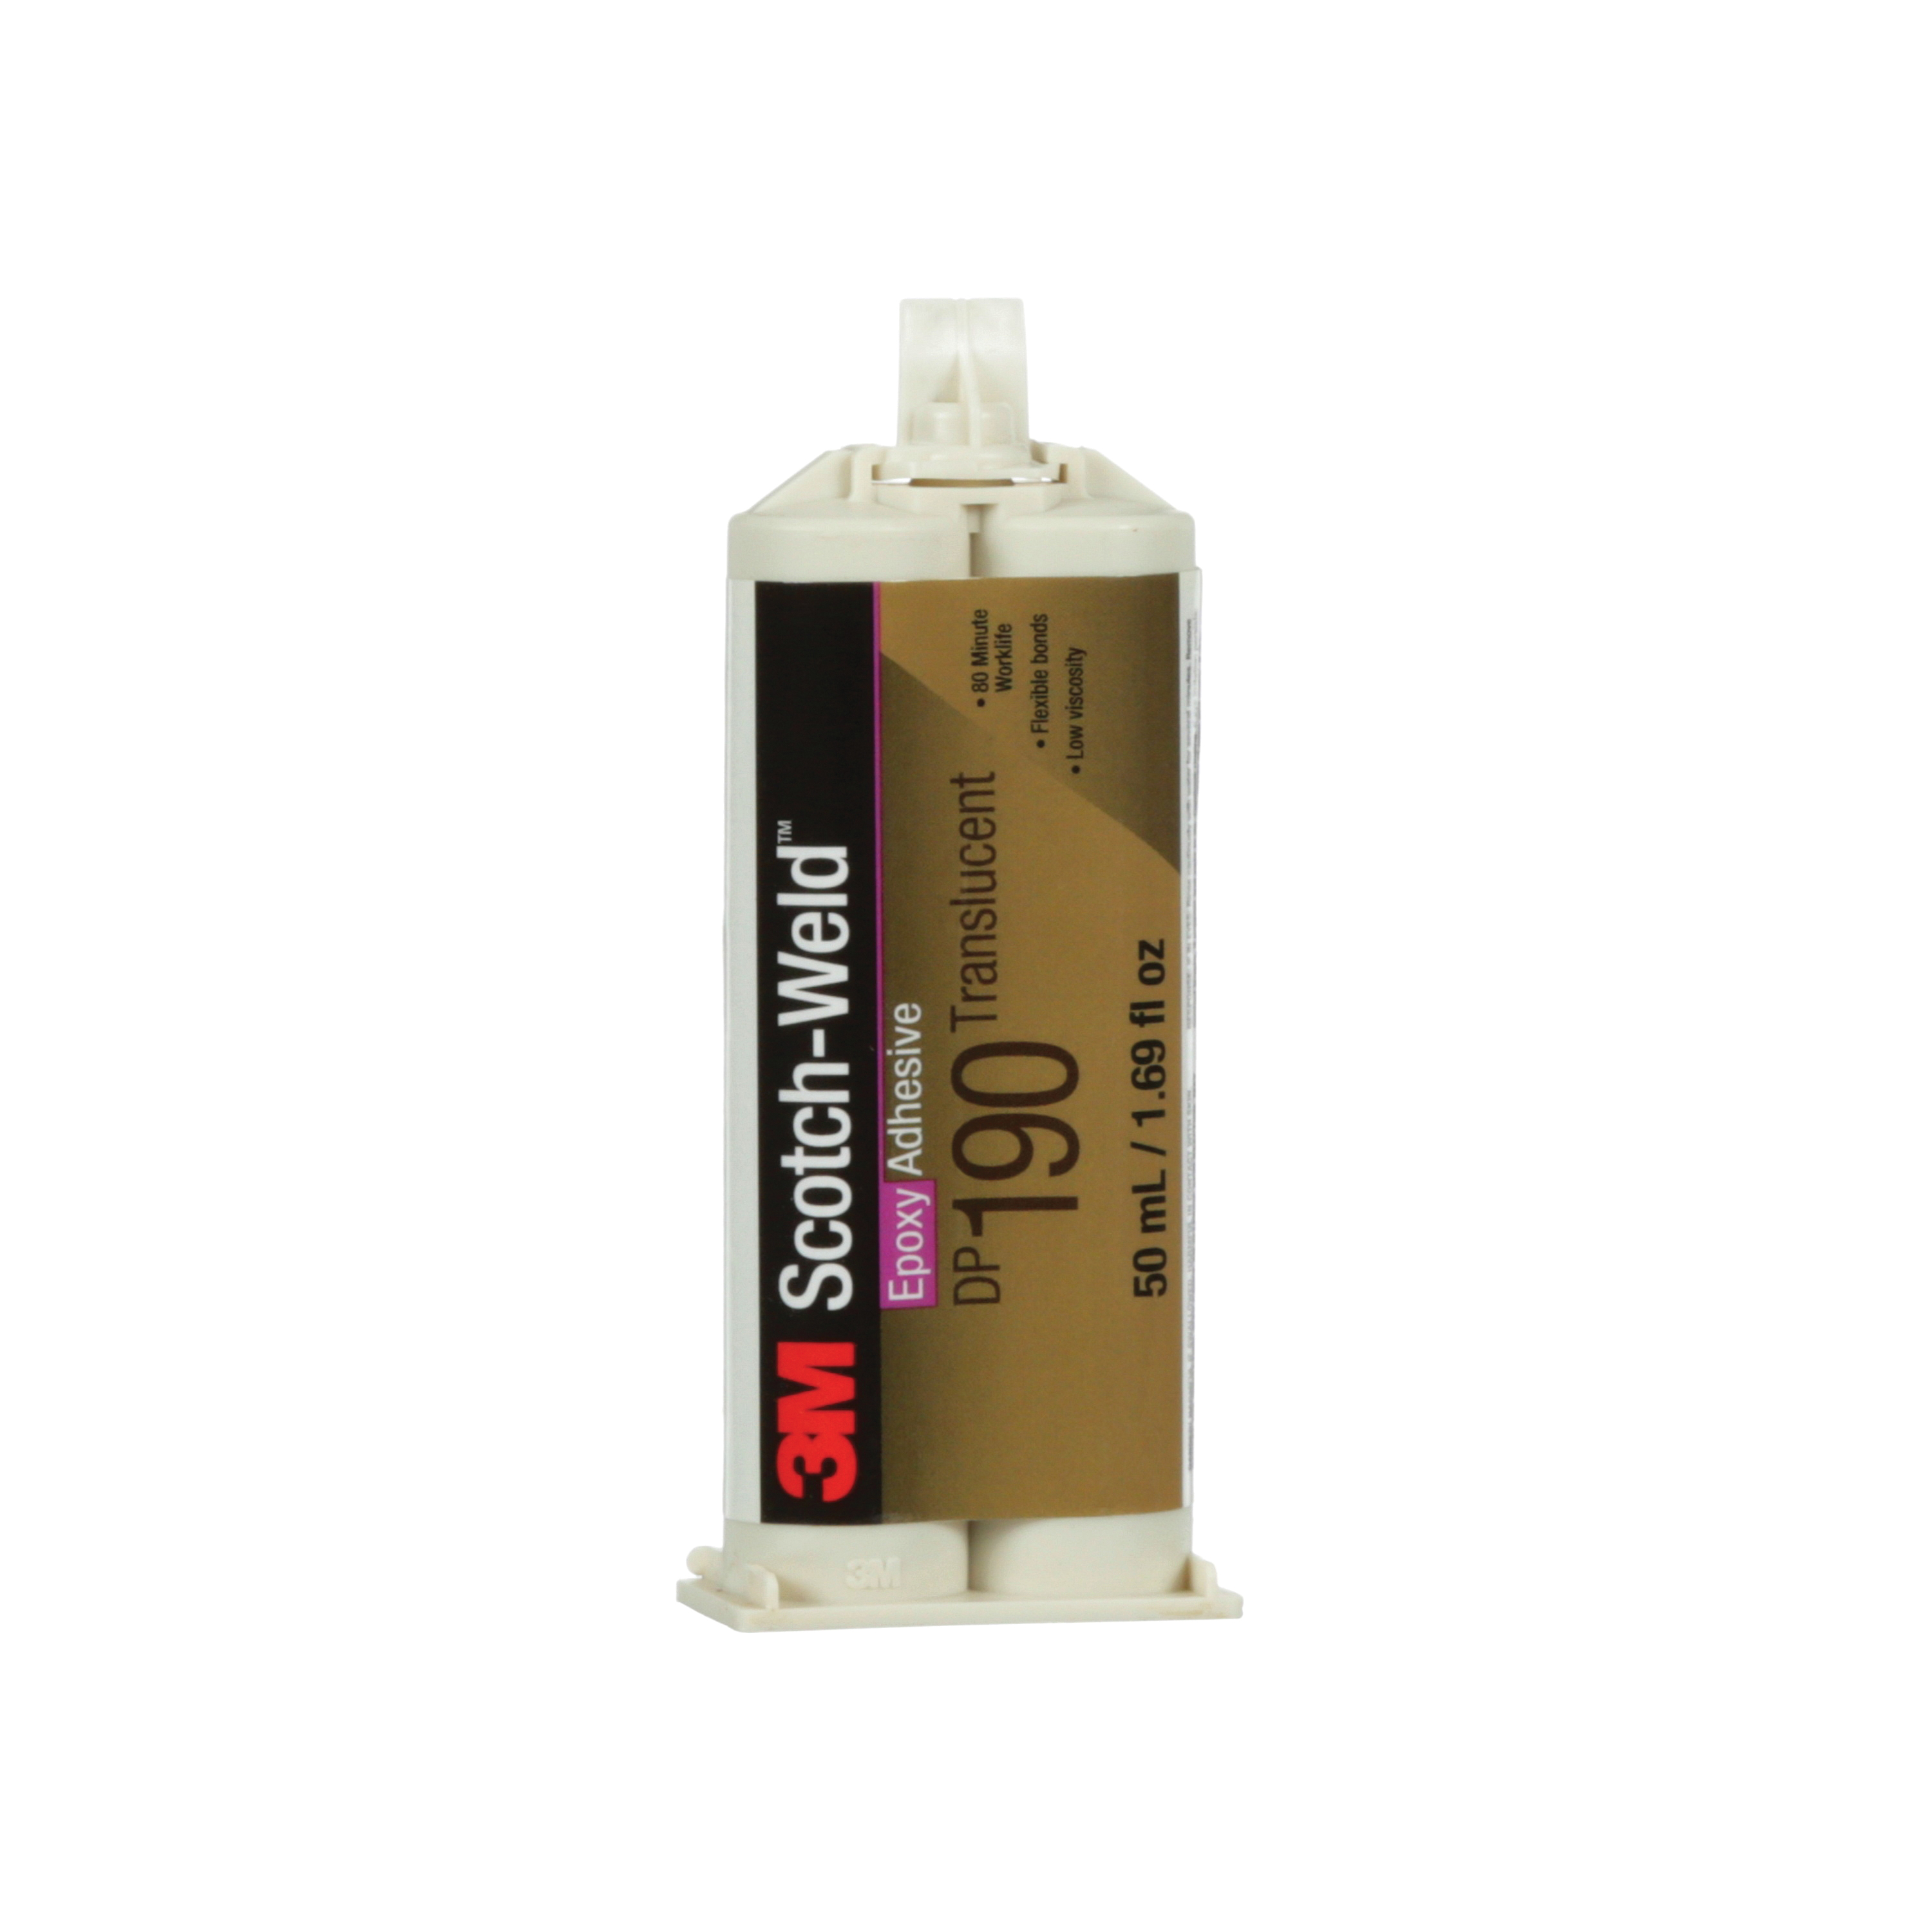 Scotch-Weld™ 021200-82470 Epoxy Adhesive, 50 mL Cartridge, Gray, 48 hr at 72 deg F Curing